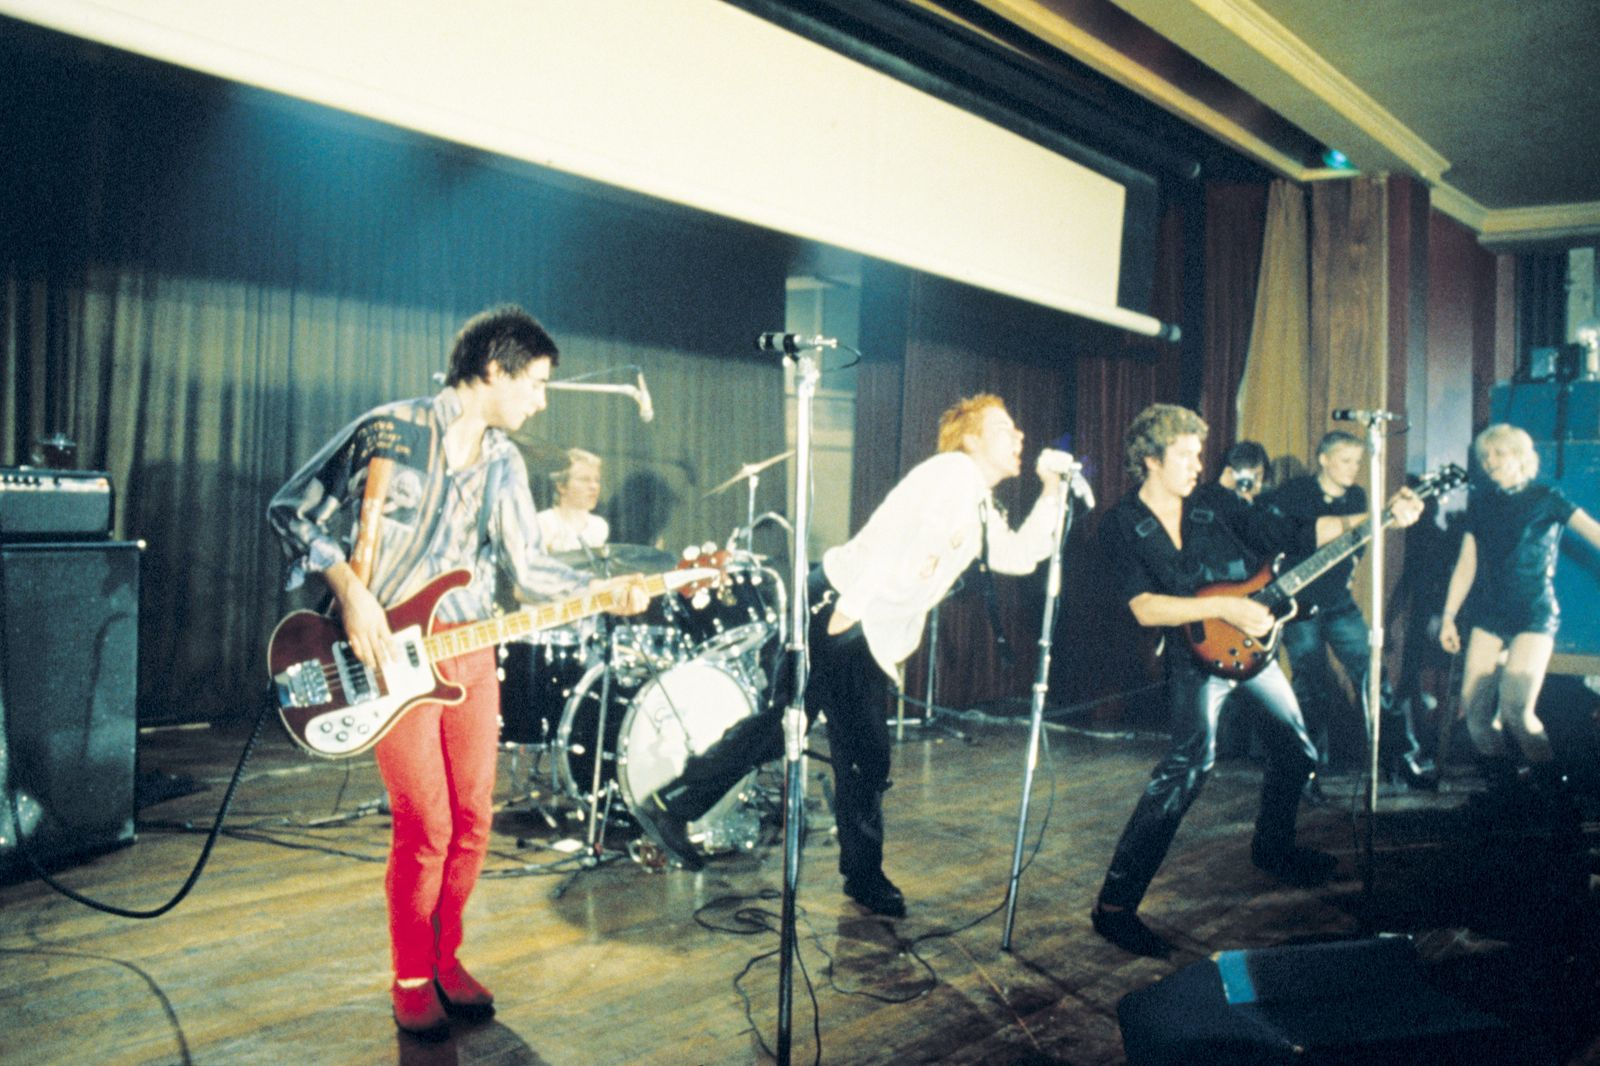 Pistols At Notre Dame Hall